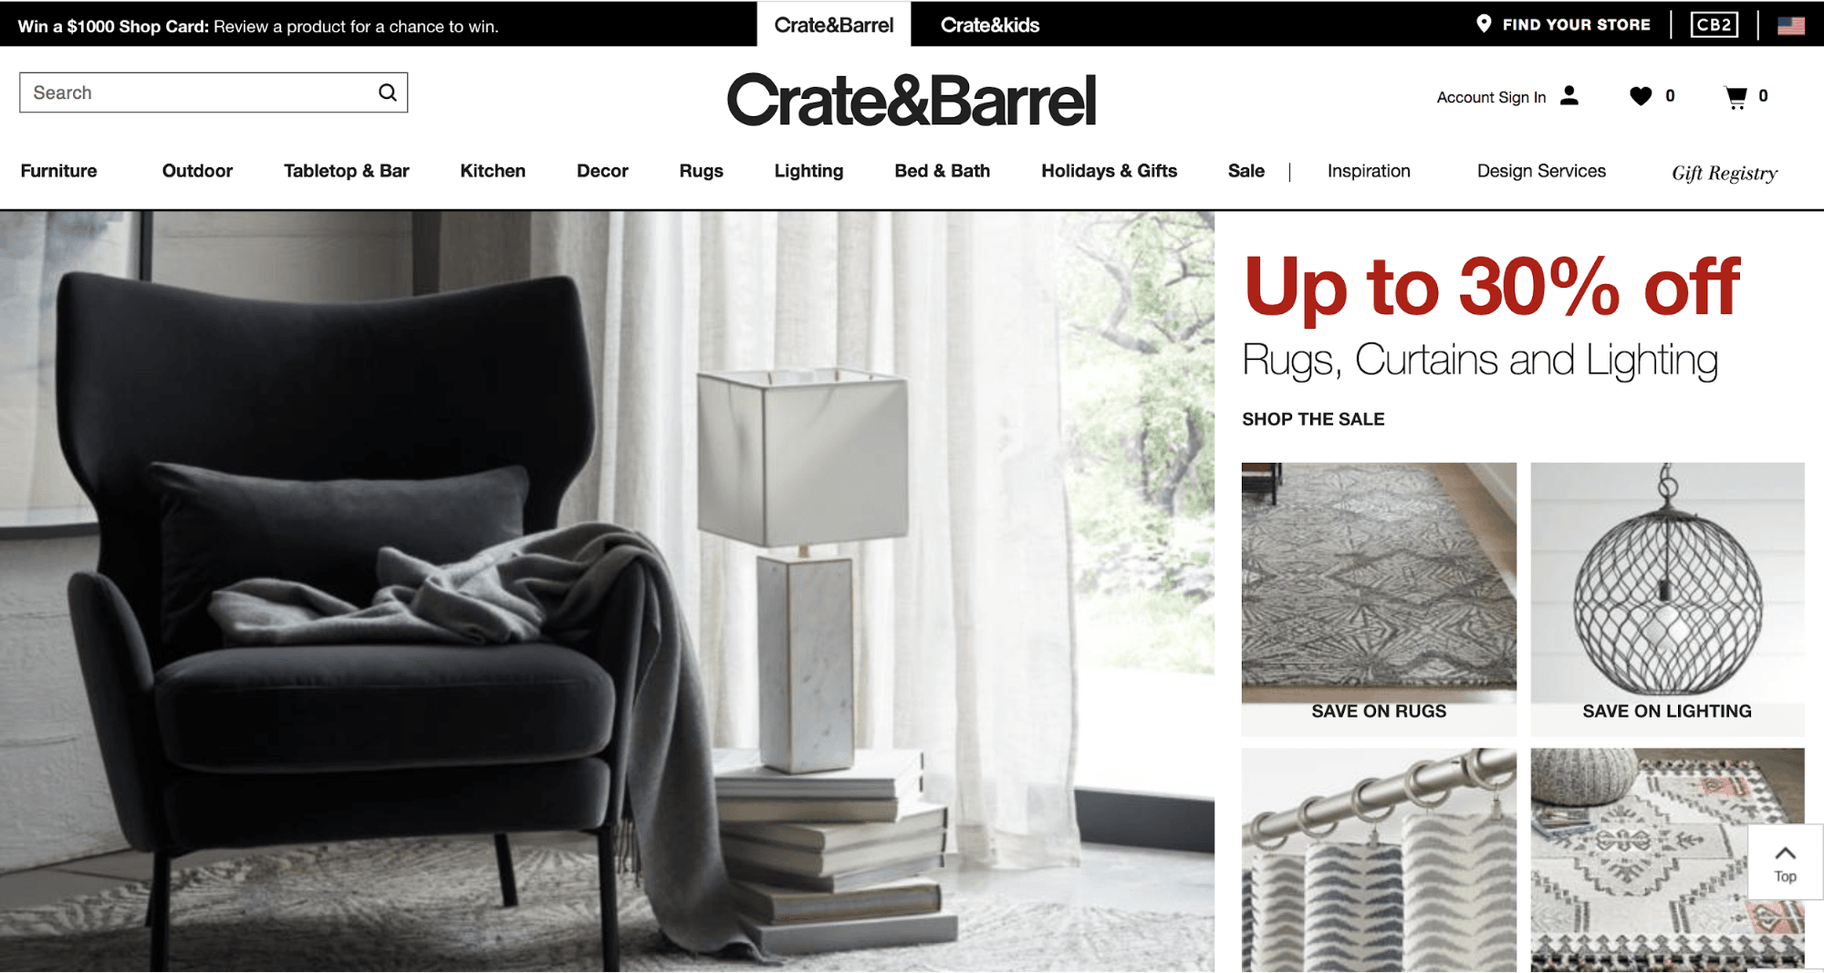 Crate&Barrel Omnichannel